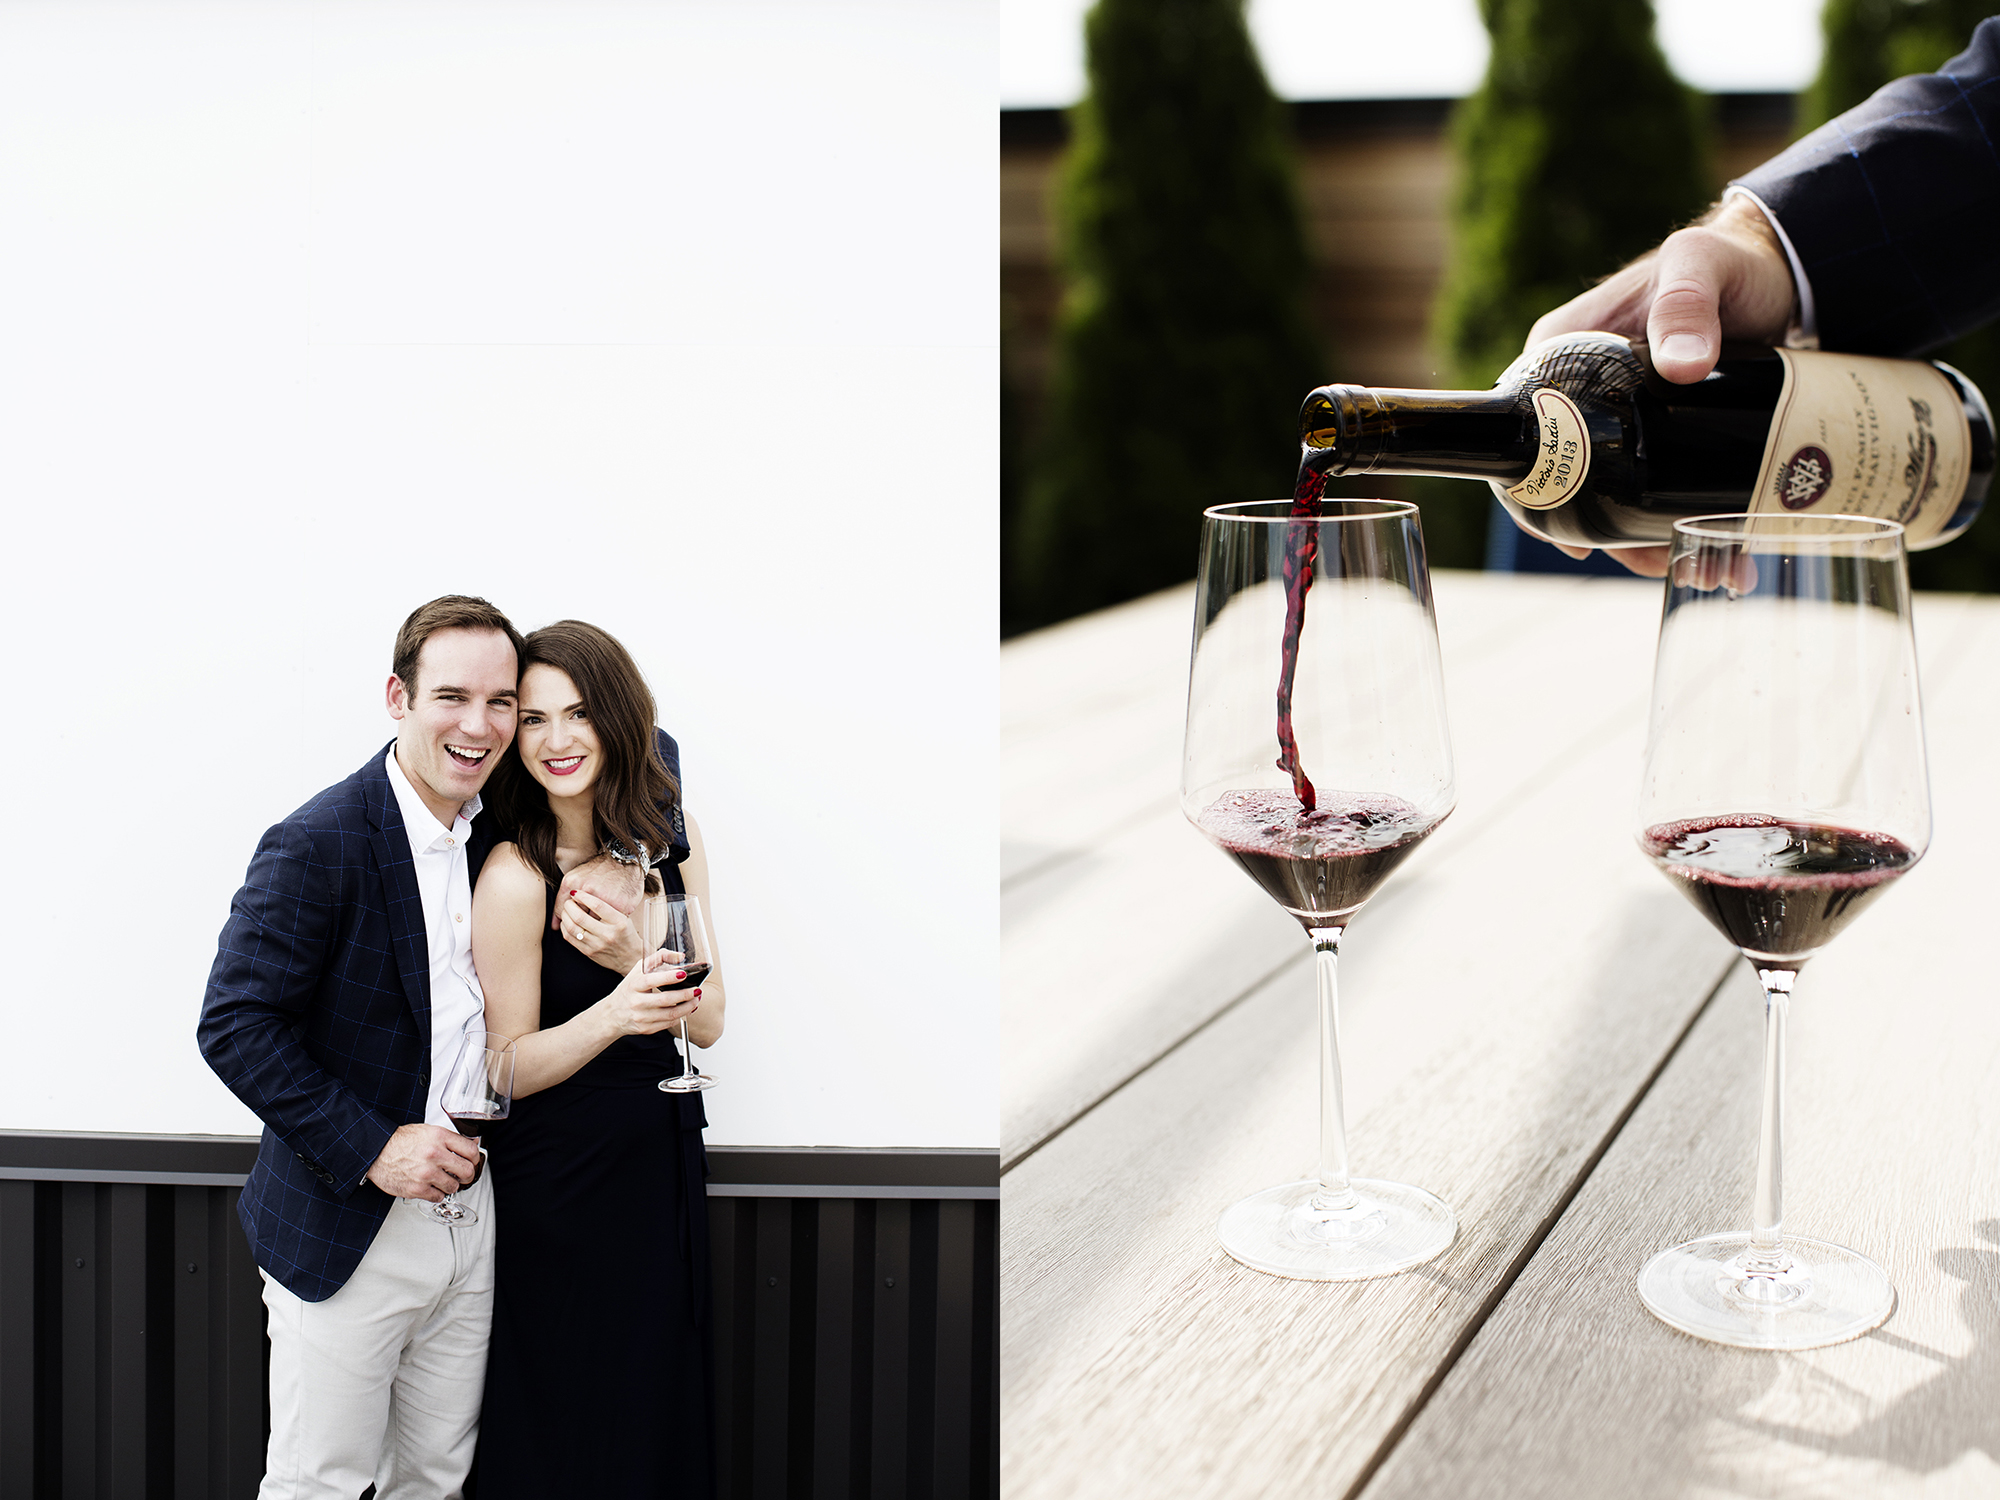 Engagement Photos | Photography by Photogen Inc. | Eliesa Johnson | Based in Minneapolis, Minnesota